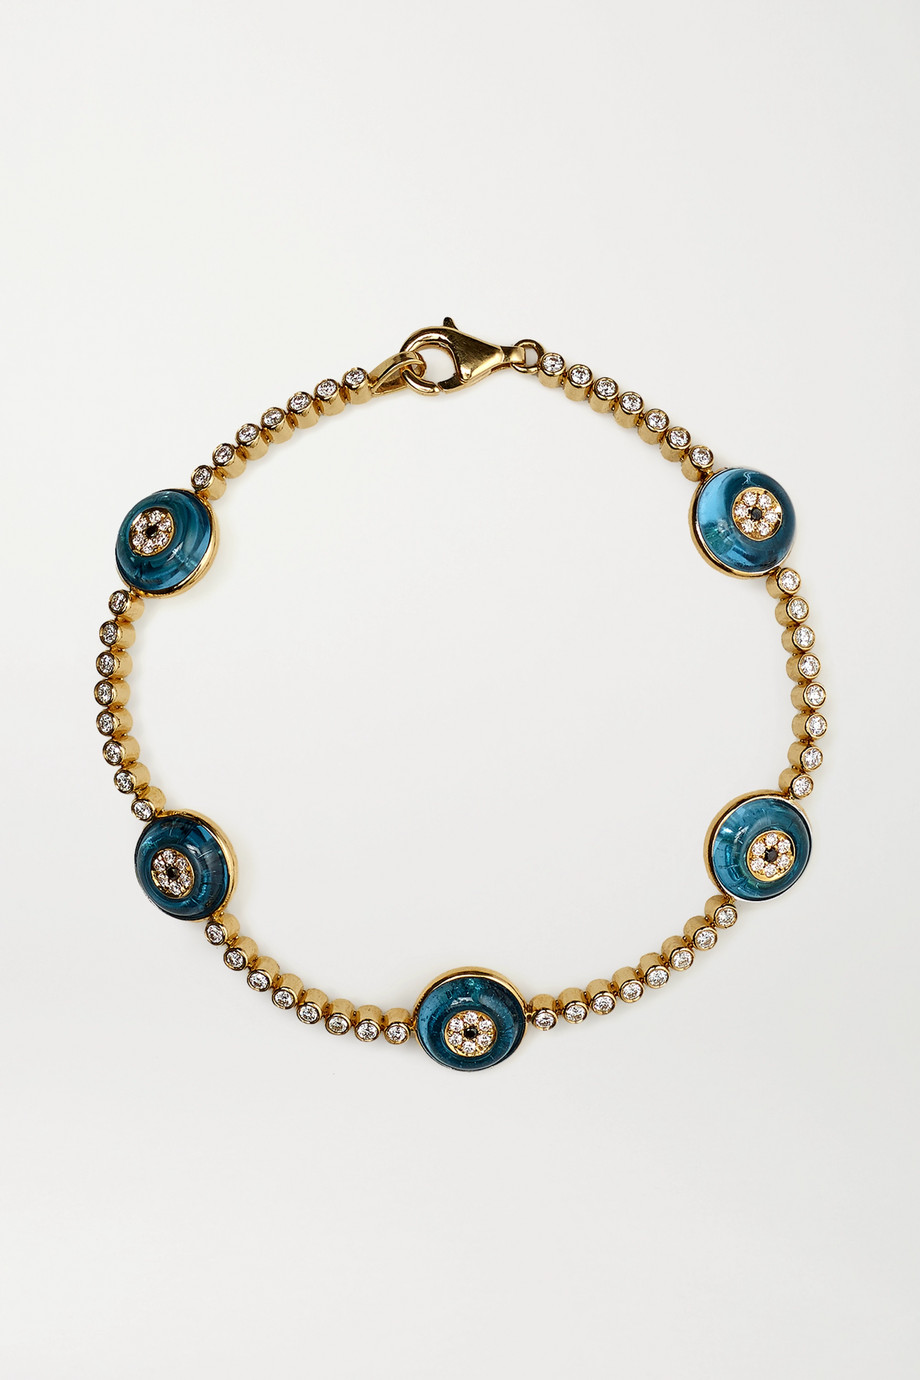 Lorraine Schwartz 18-karat gold, topaz and diamond bracelet